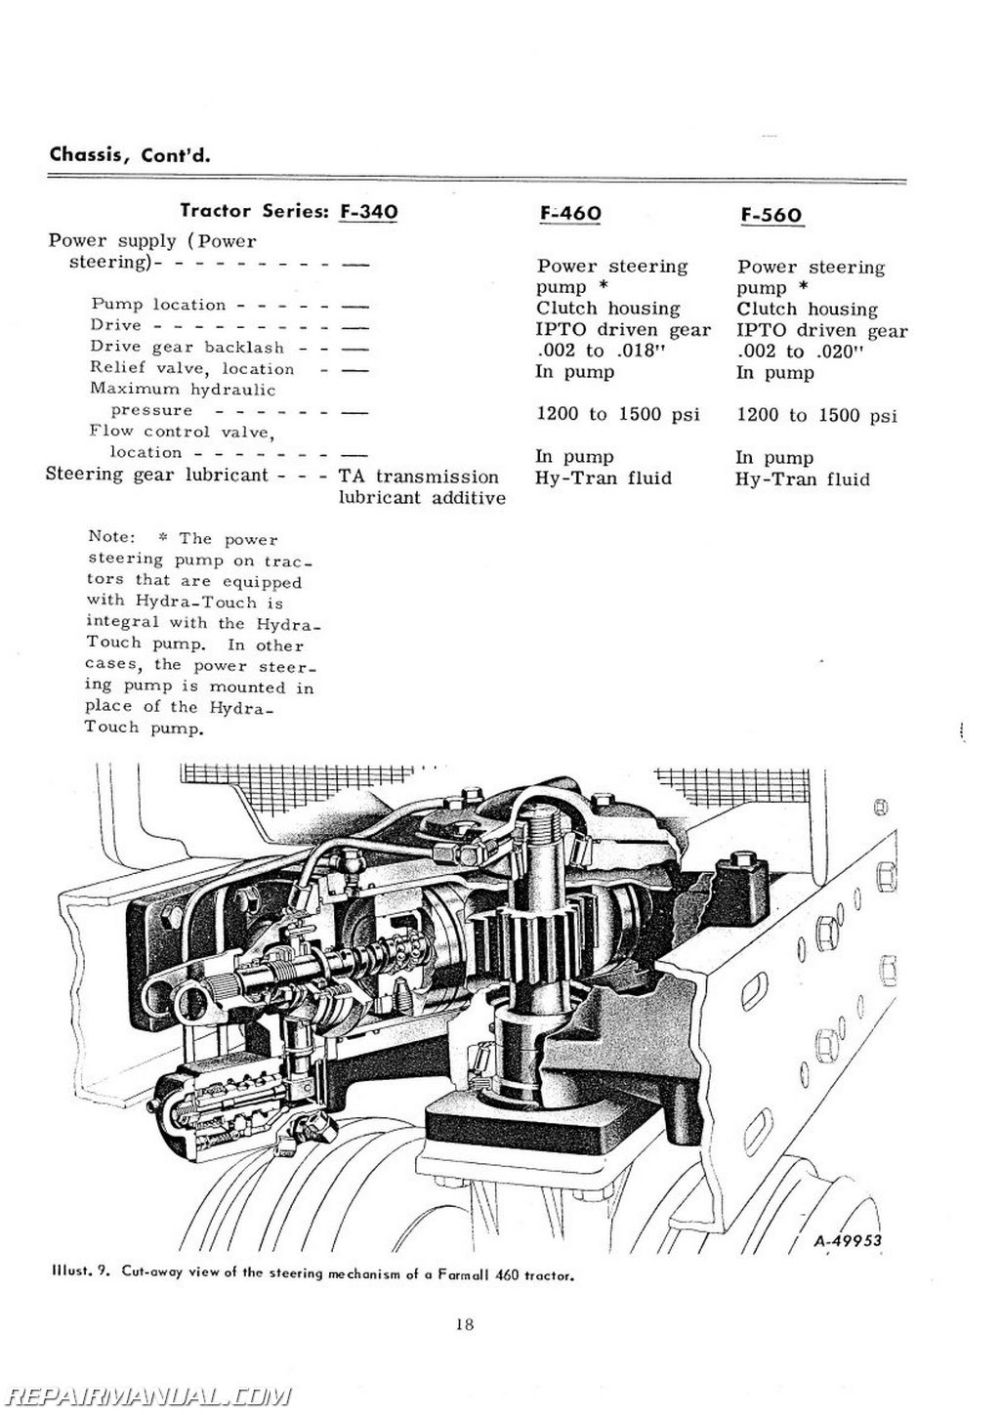 medium resolution of 1206 international tractor wiring diagram schematic wiring library ih farmall 560 farmall 460 transmission diagram schematics